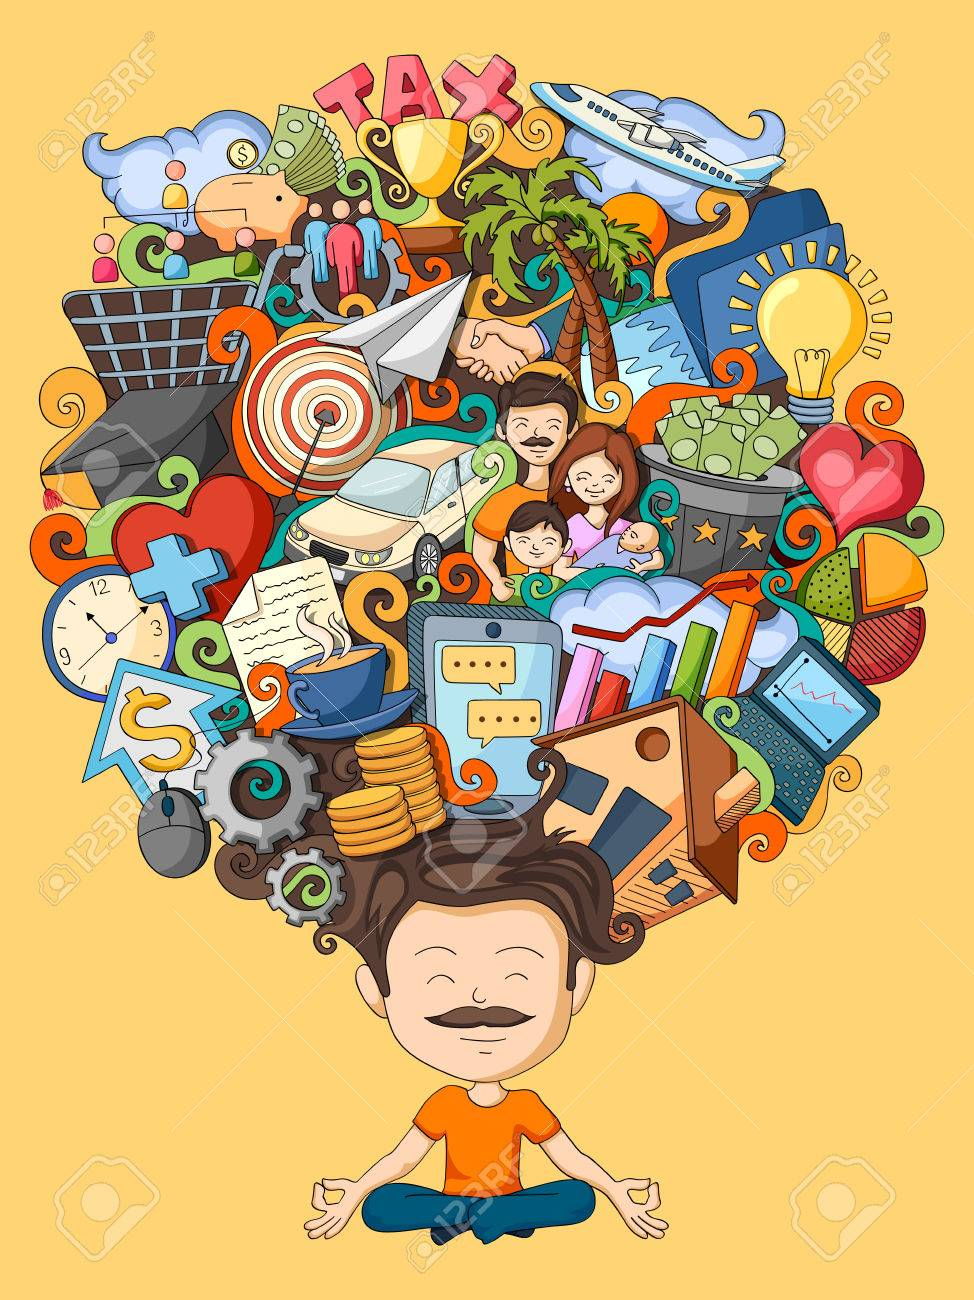 vector illustration of dream and thought of young man - 55751872